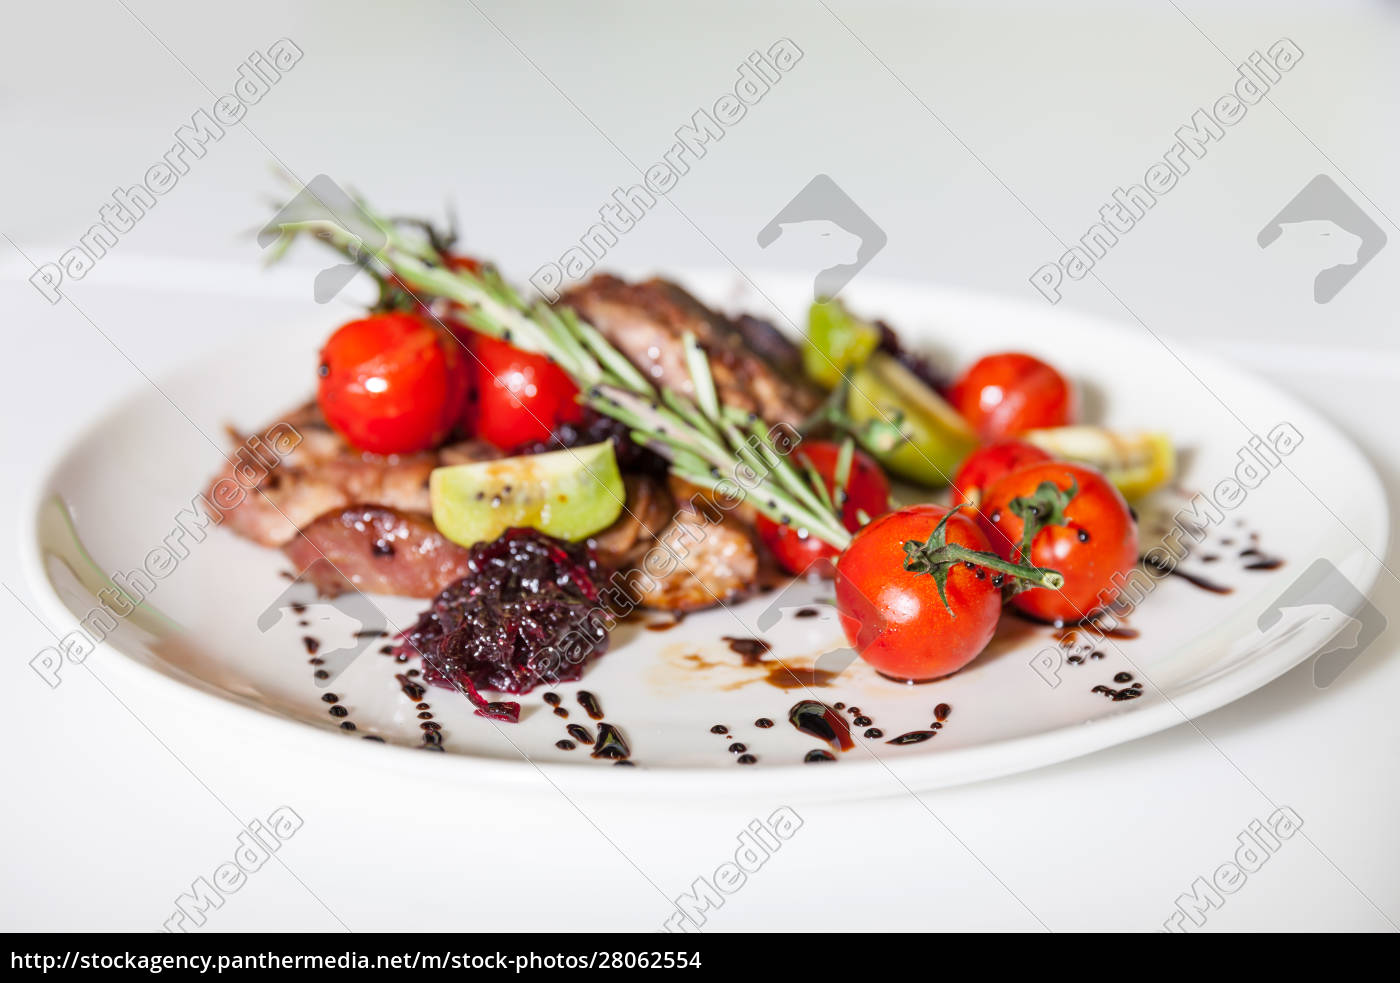 meat, dish, with, vegetables - 28062554